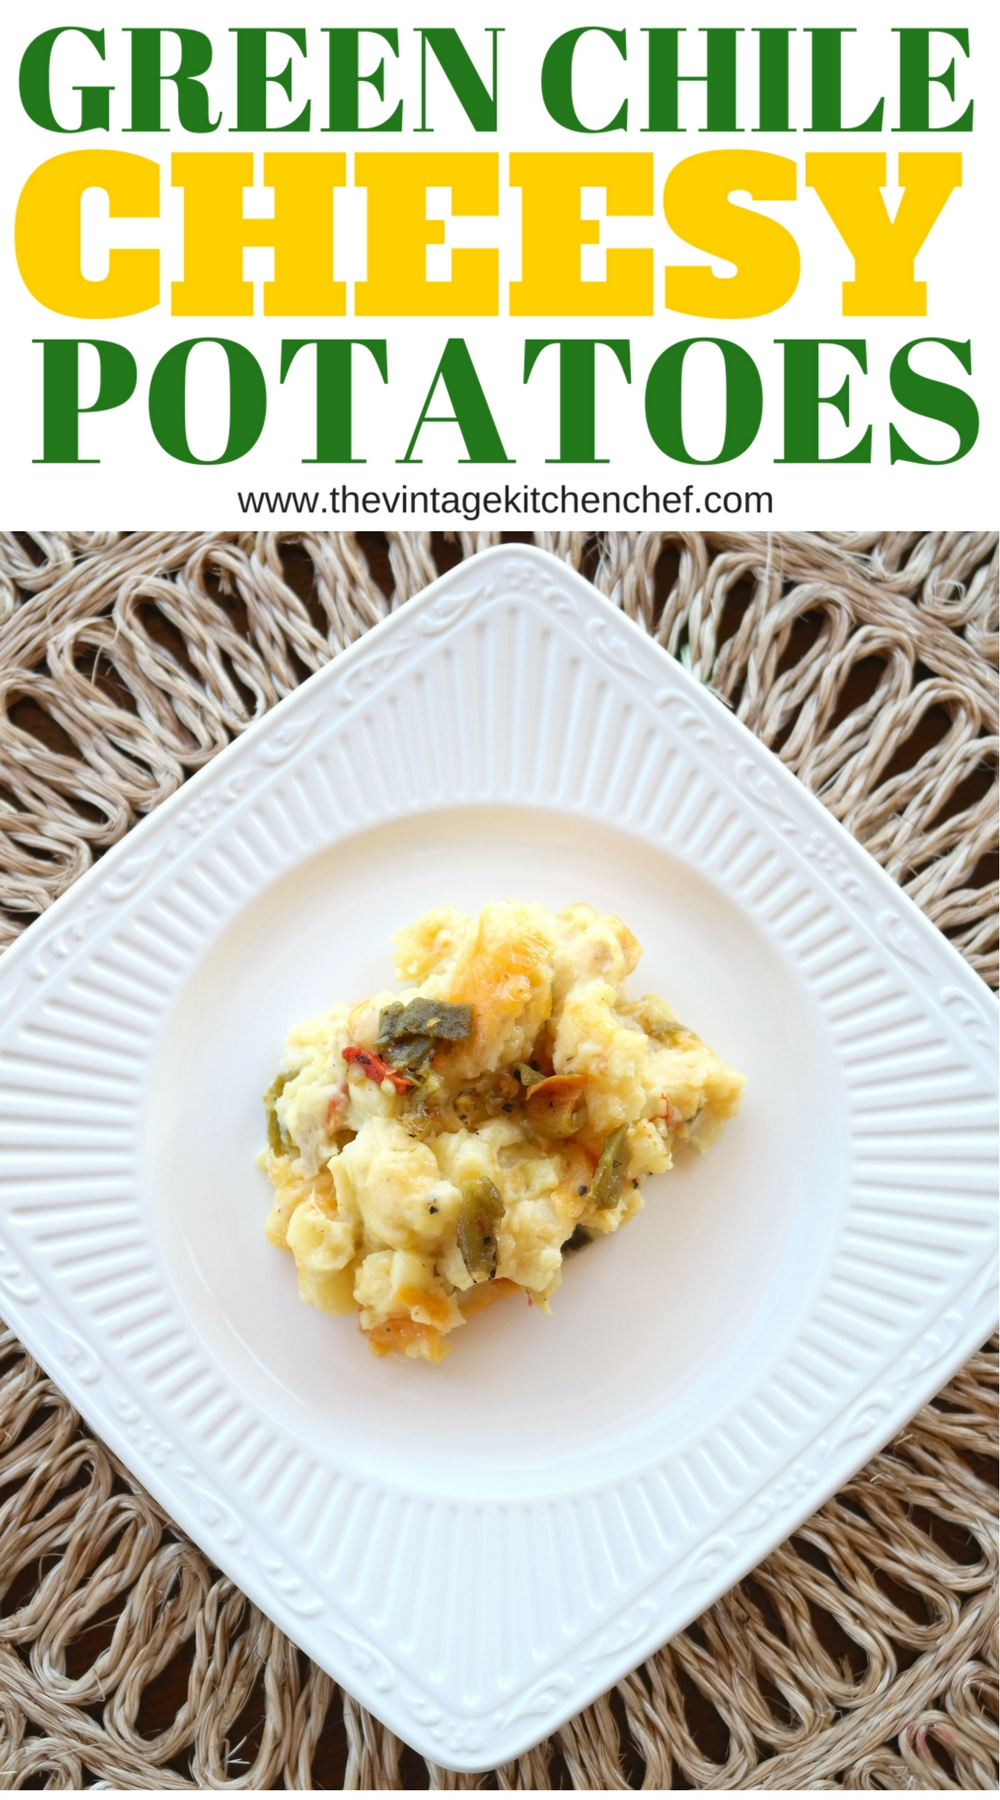 Green Chile Cheesy Potatoes mingles together cheesy mashed potatoes with the spiciness of flavorful green chile. Great as a side dish or main entree.